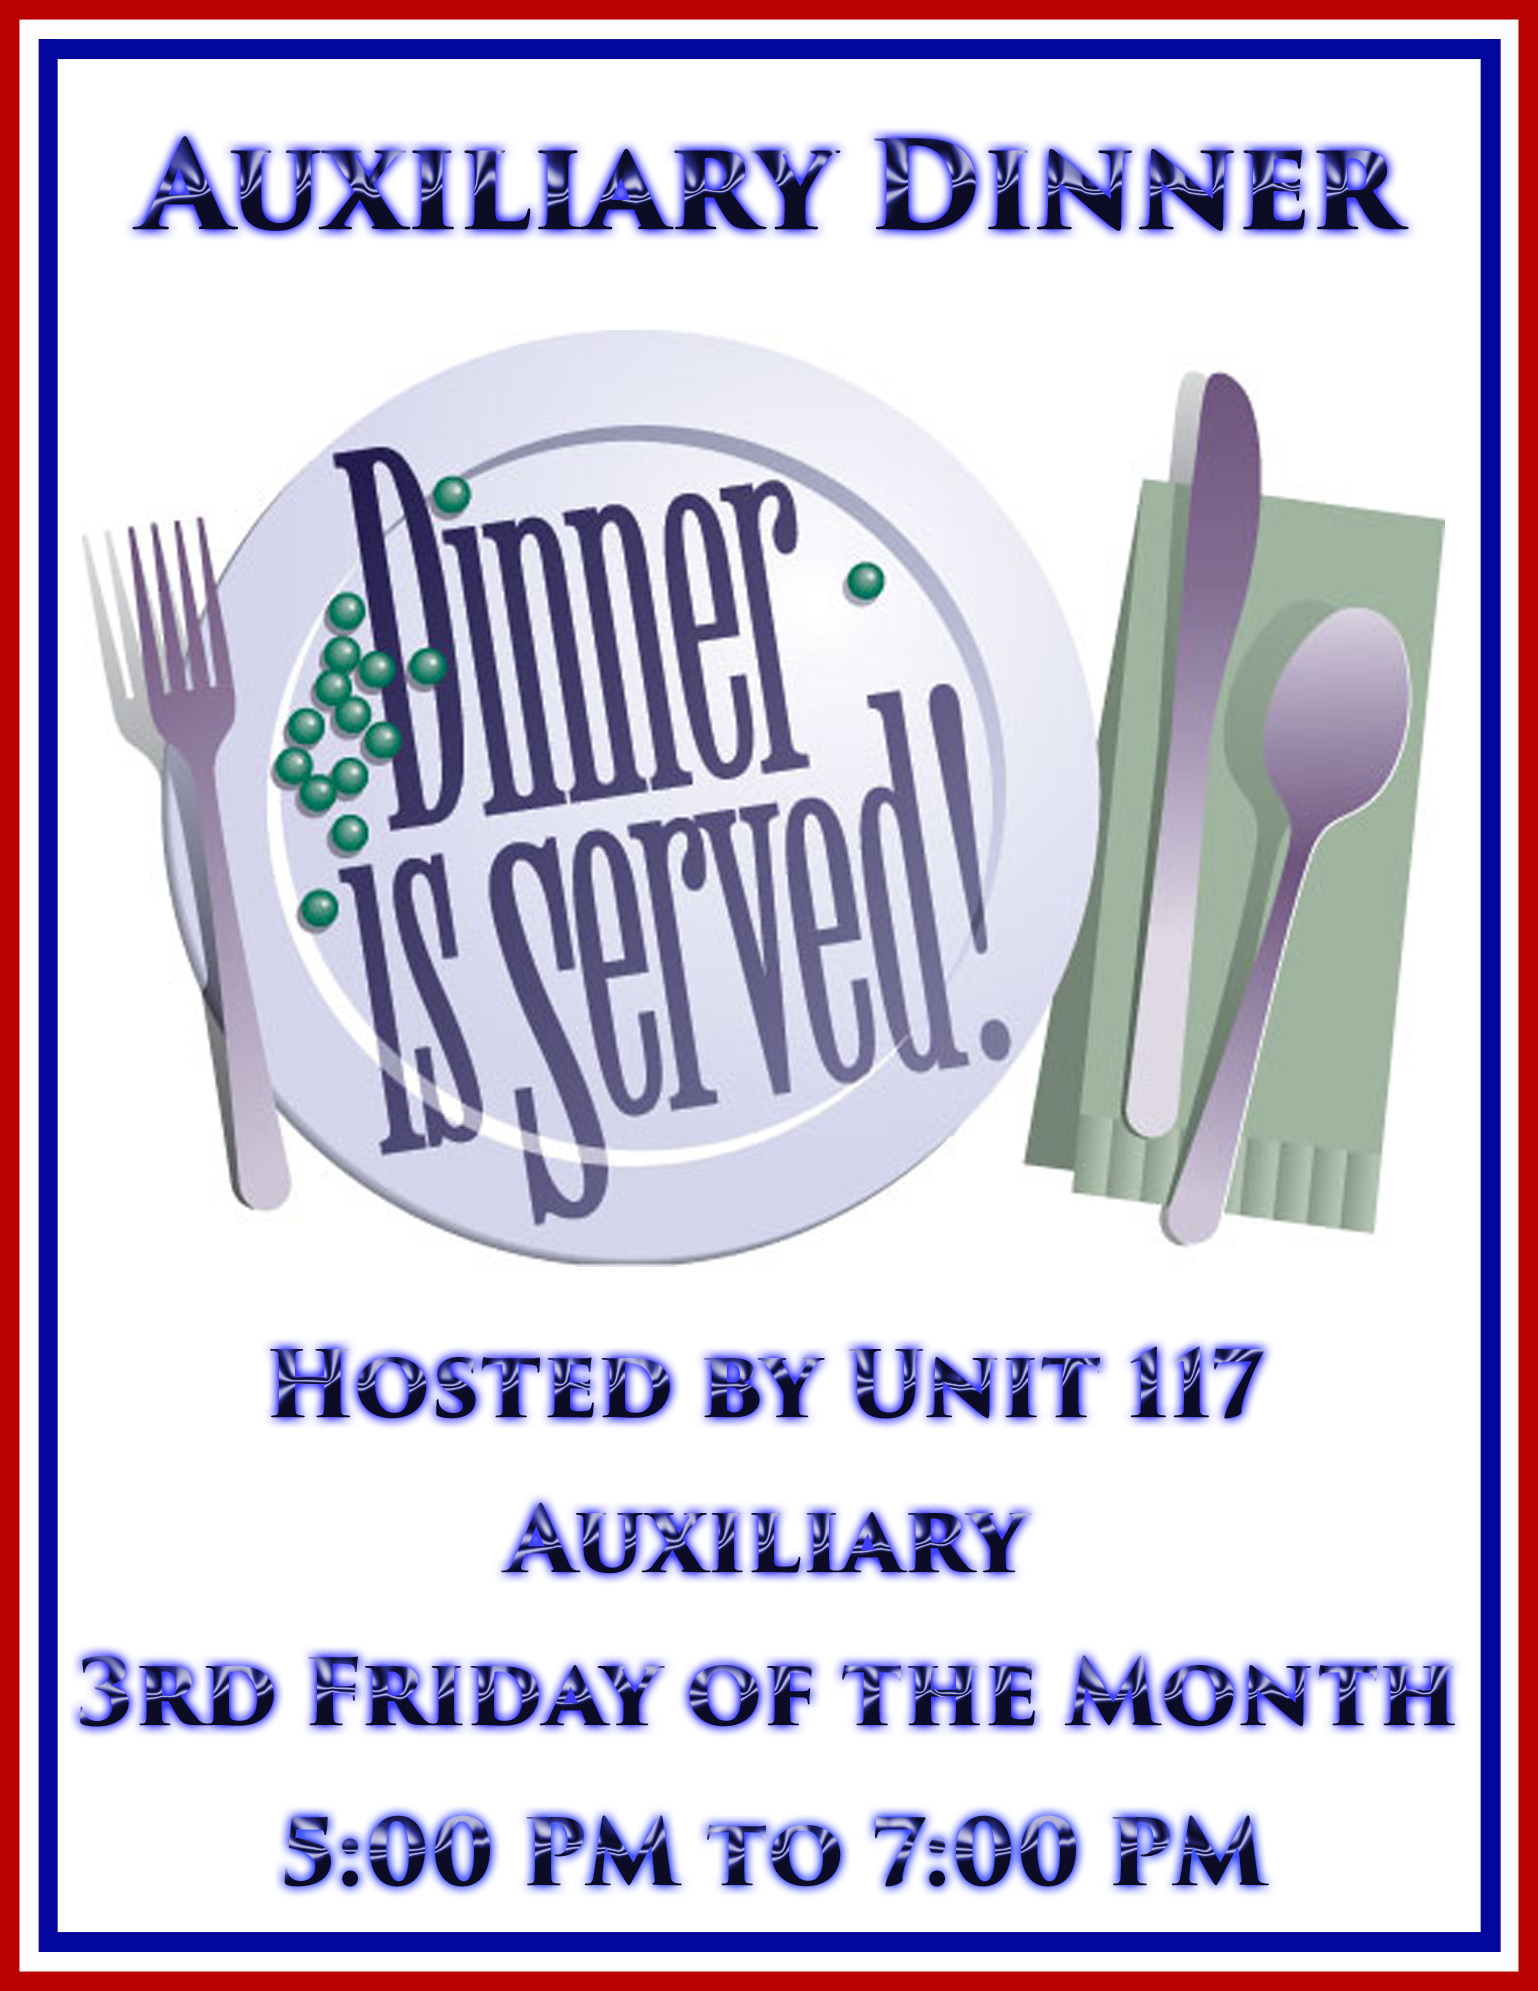 Auxiliary Dinner @ American Legion Post 117 | Palm Bay | Florida | United States